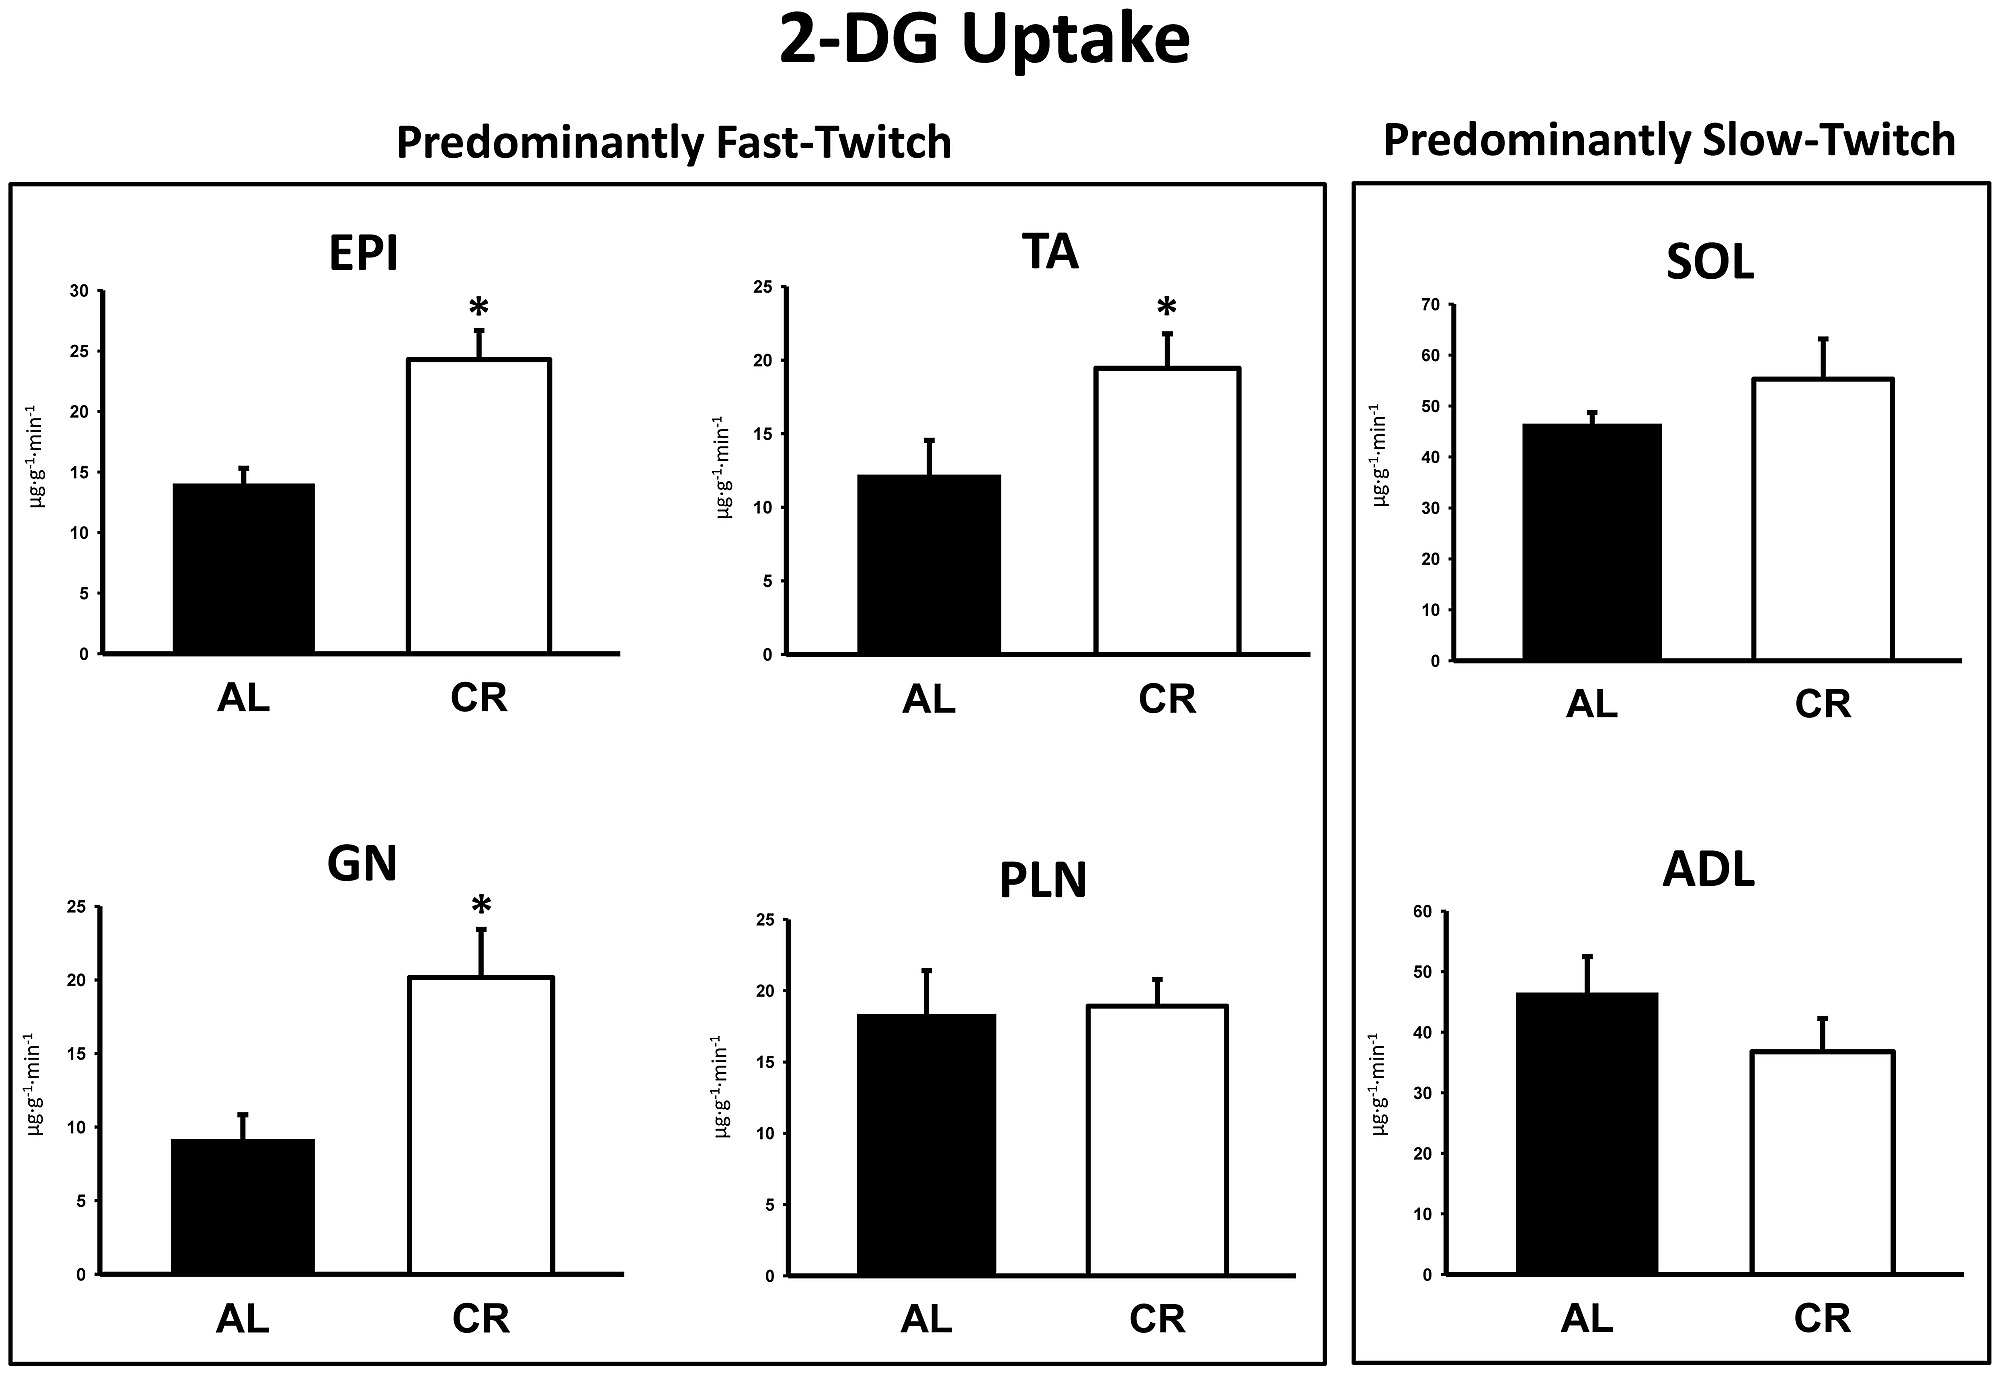 2-Deoxyglucose (2-DG) uptake in predominantly fast-twitch